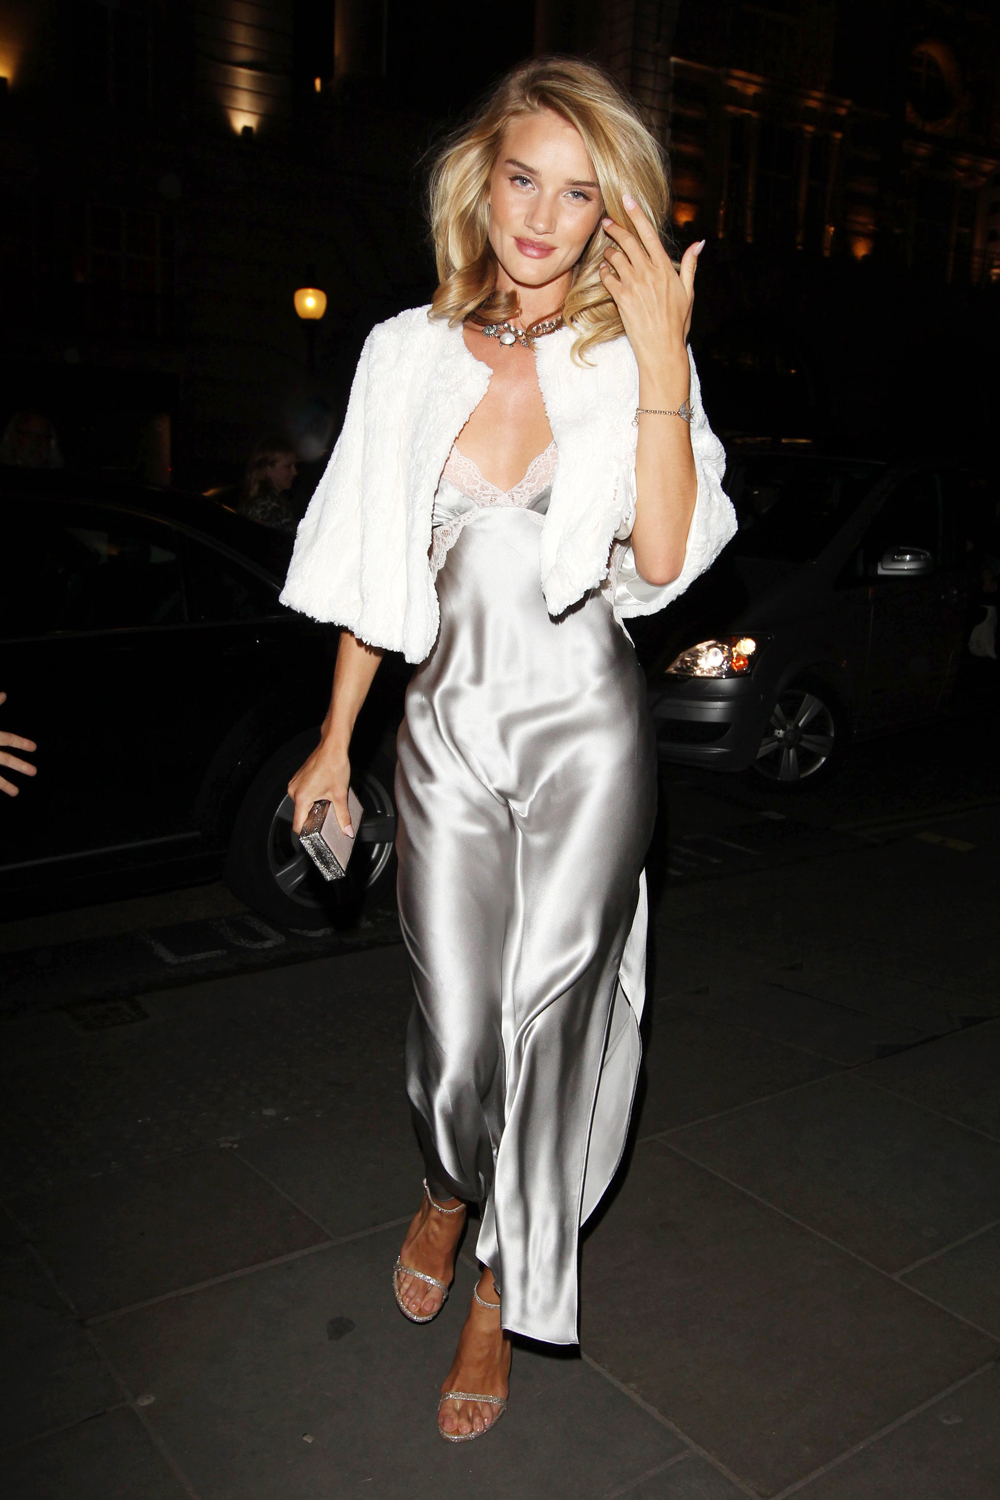 Rosie Huntington-Whiteley Does Underwear As Outerwear At The Launch Of Her Perfume